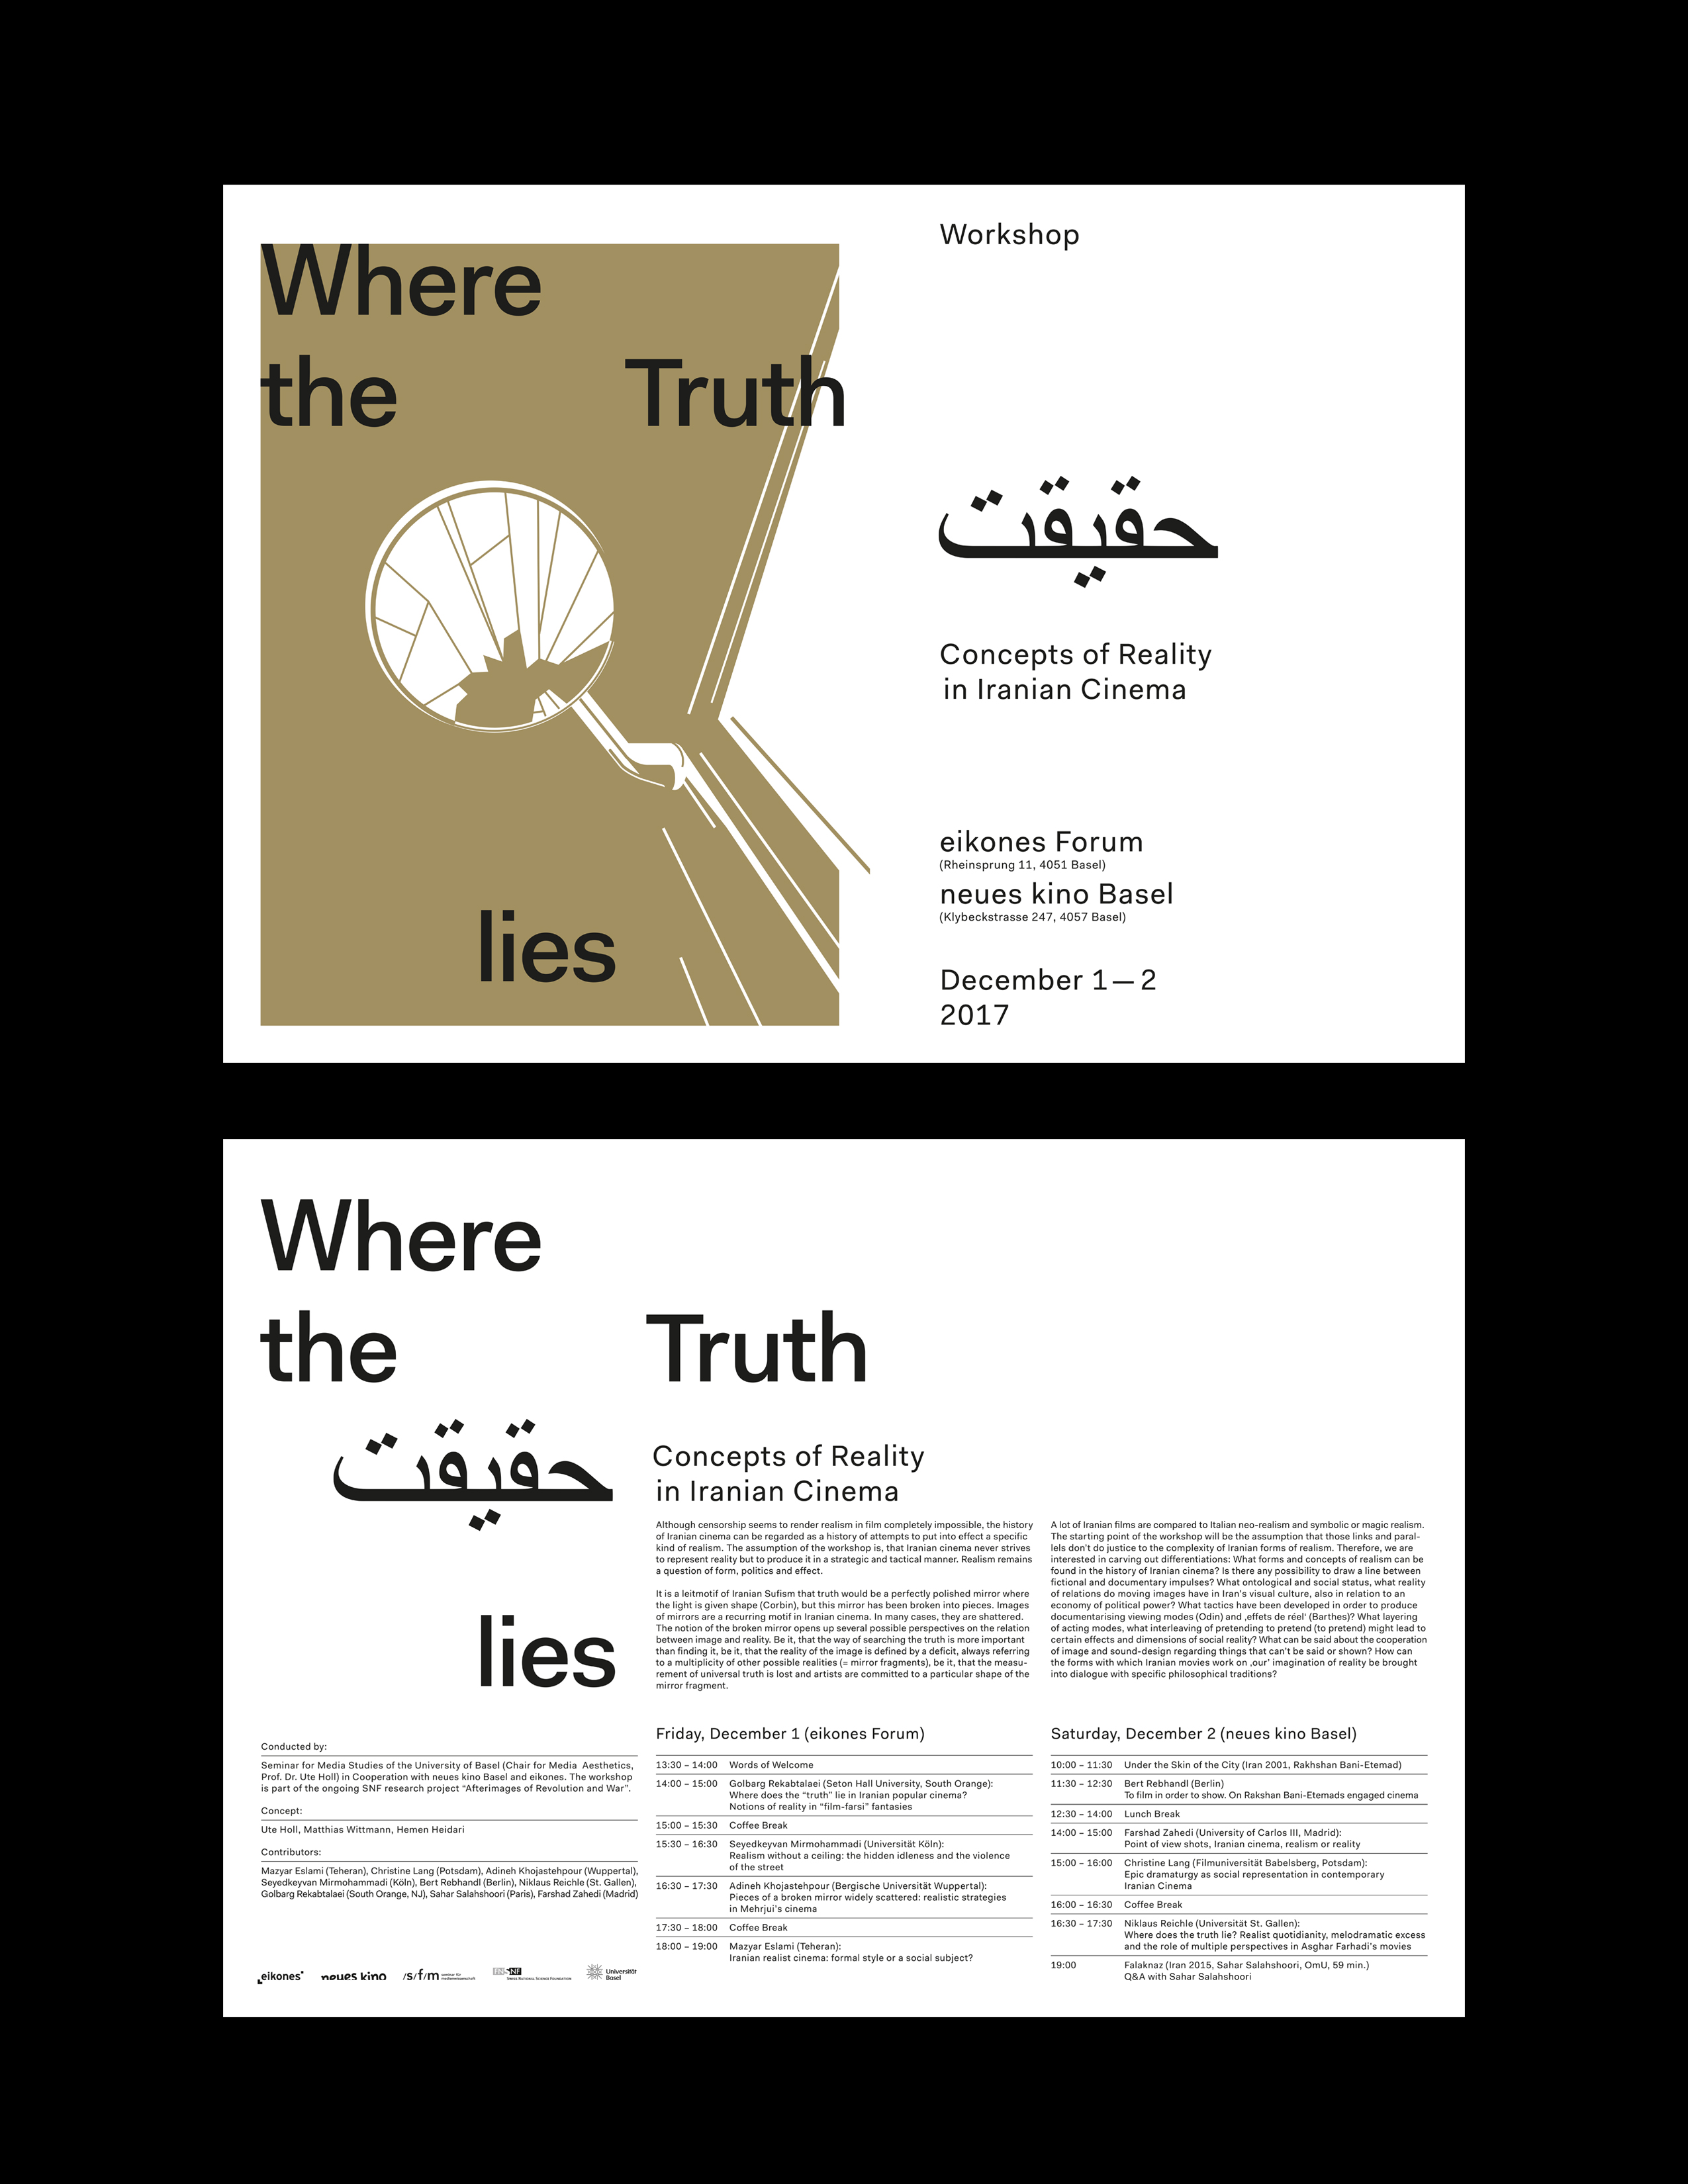 Where the Truth lies – Concepts of reality in Iranian cinema